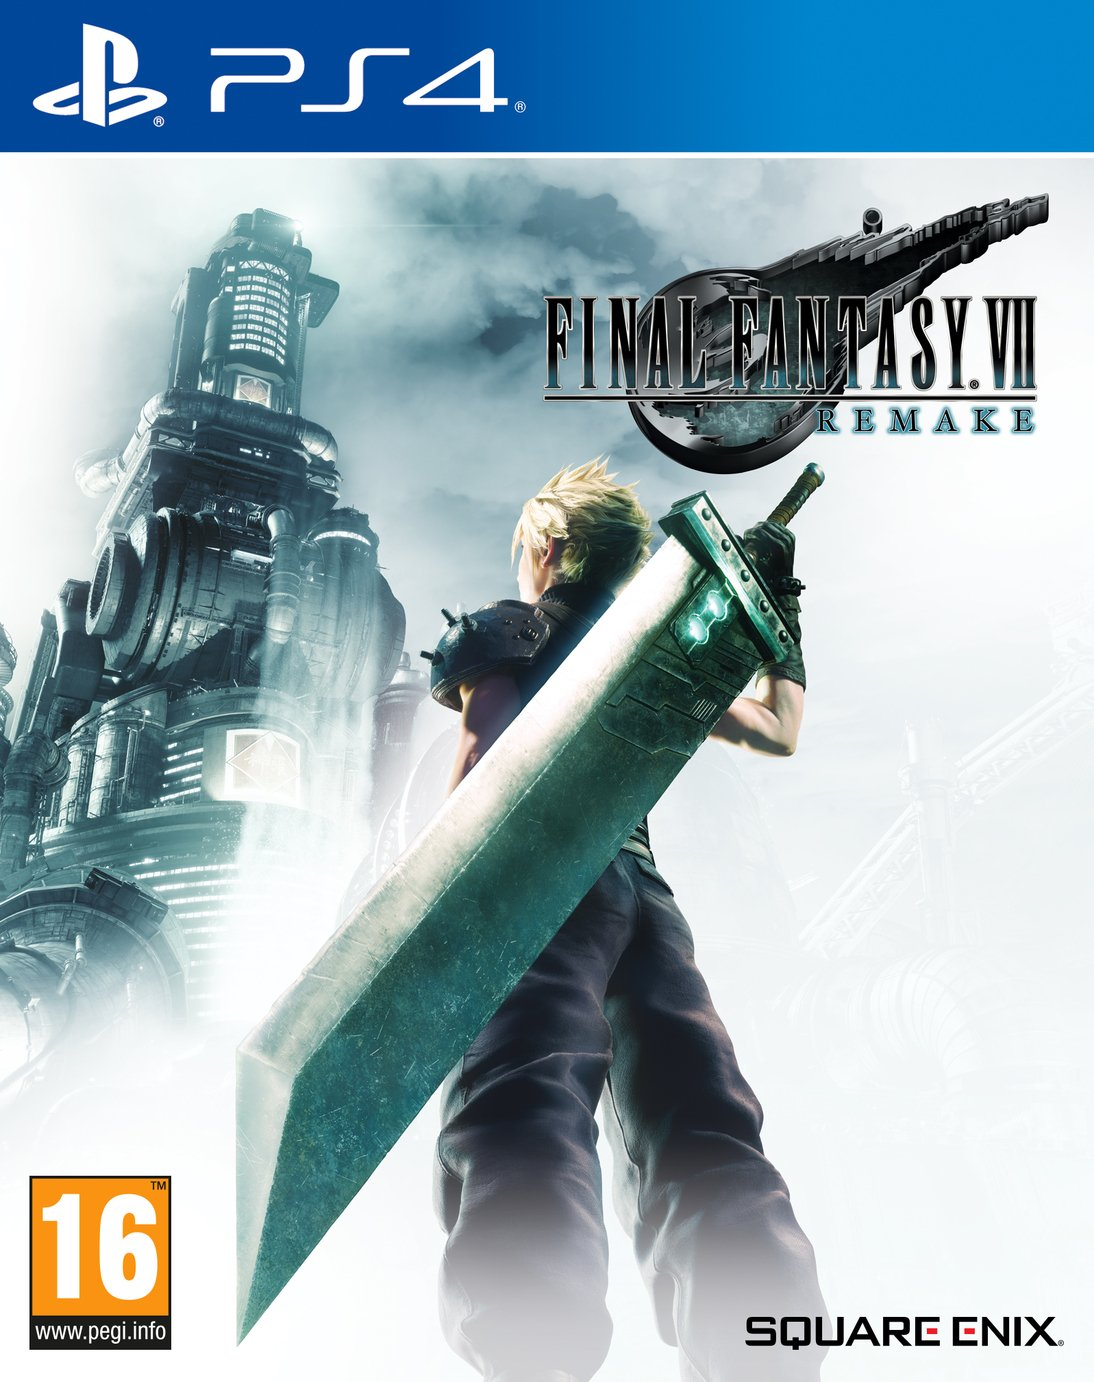 Final Fantasy VII Remake PS4 Pre-order Game. from final fantasy